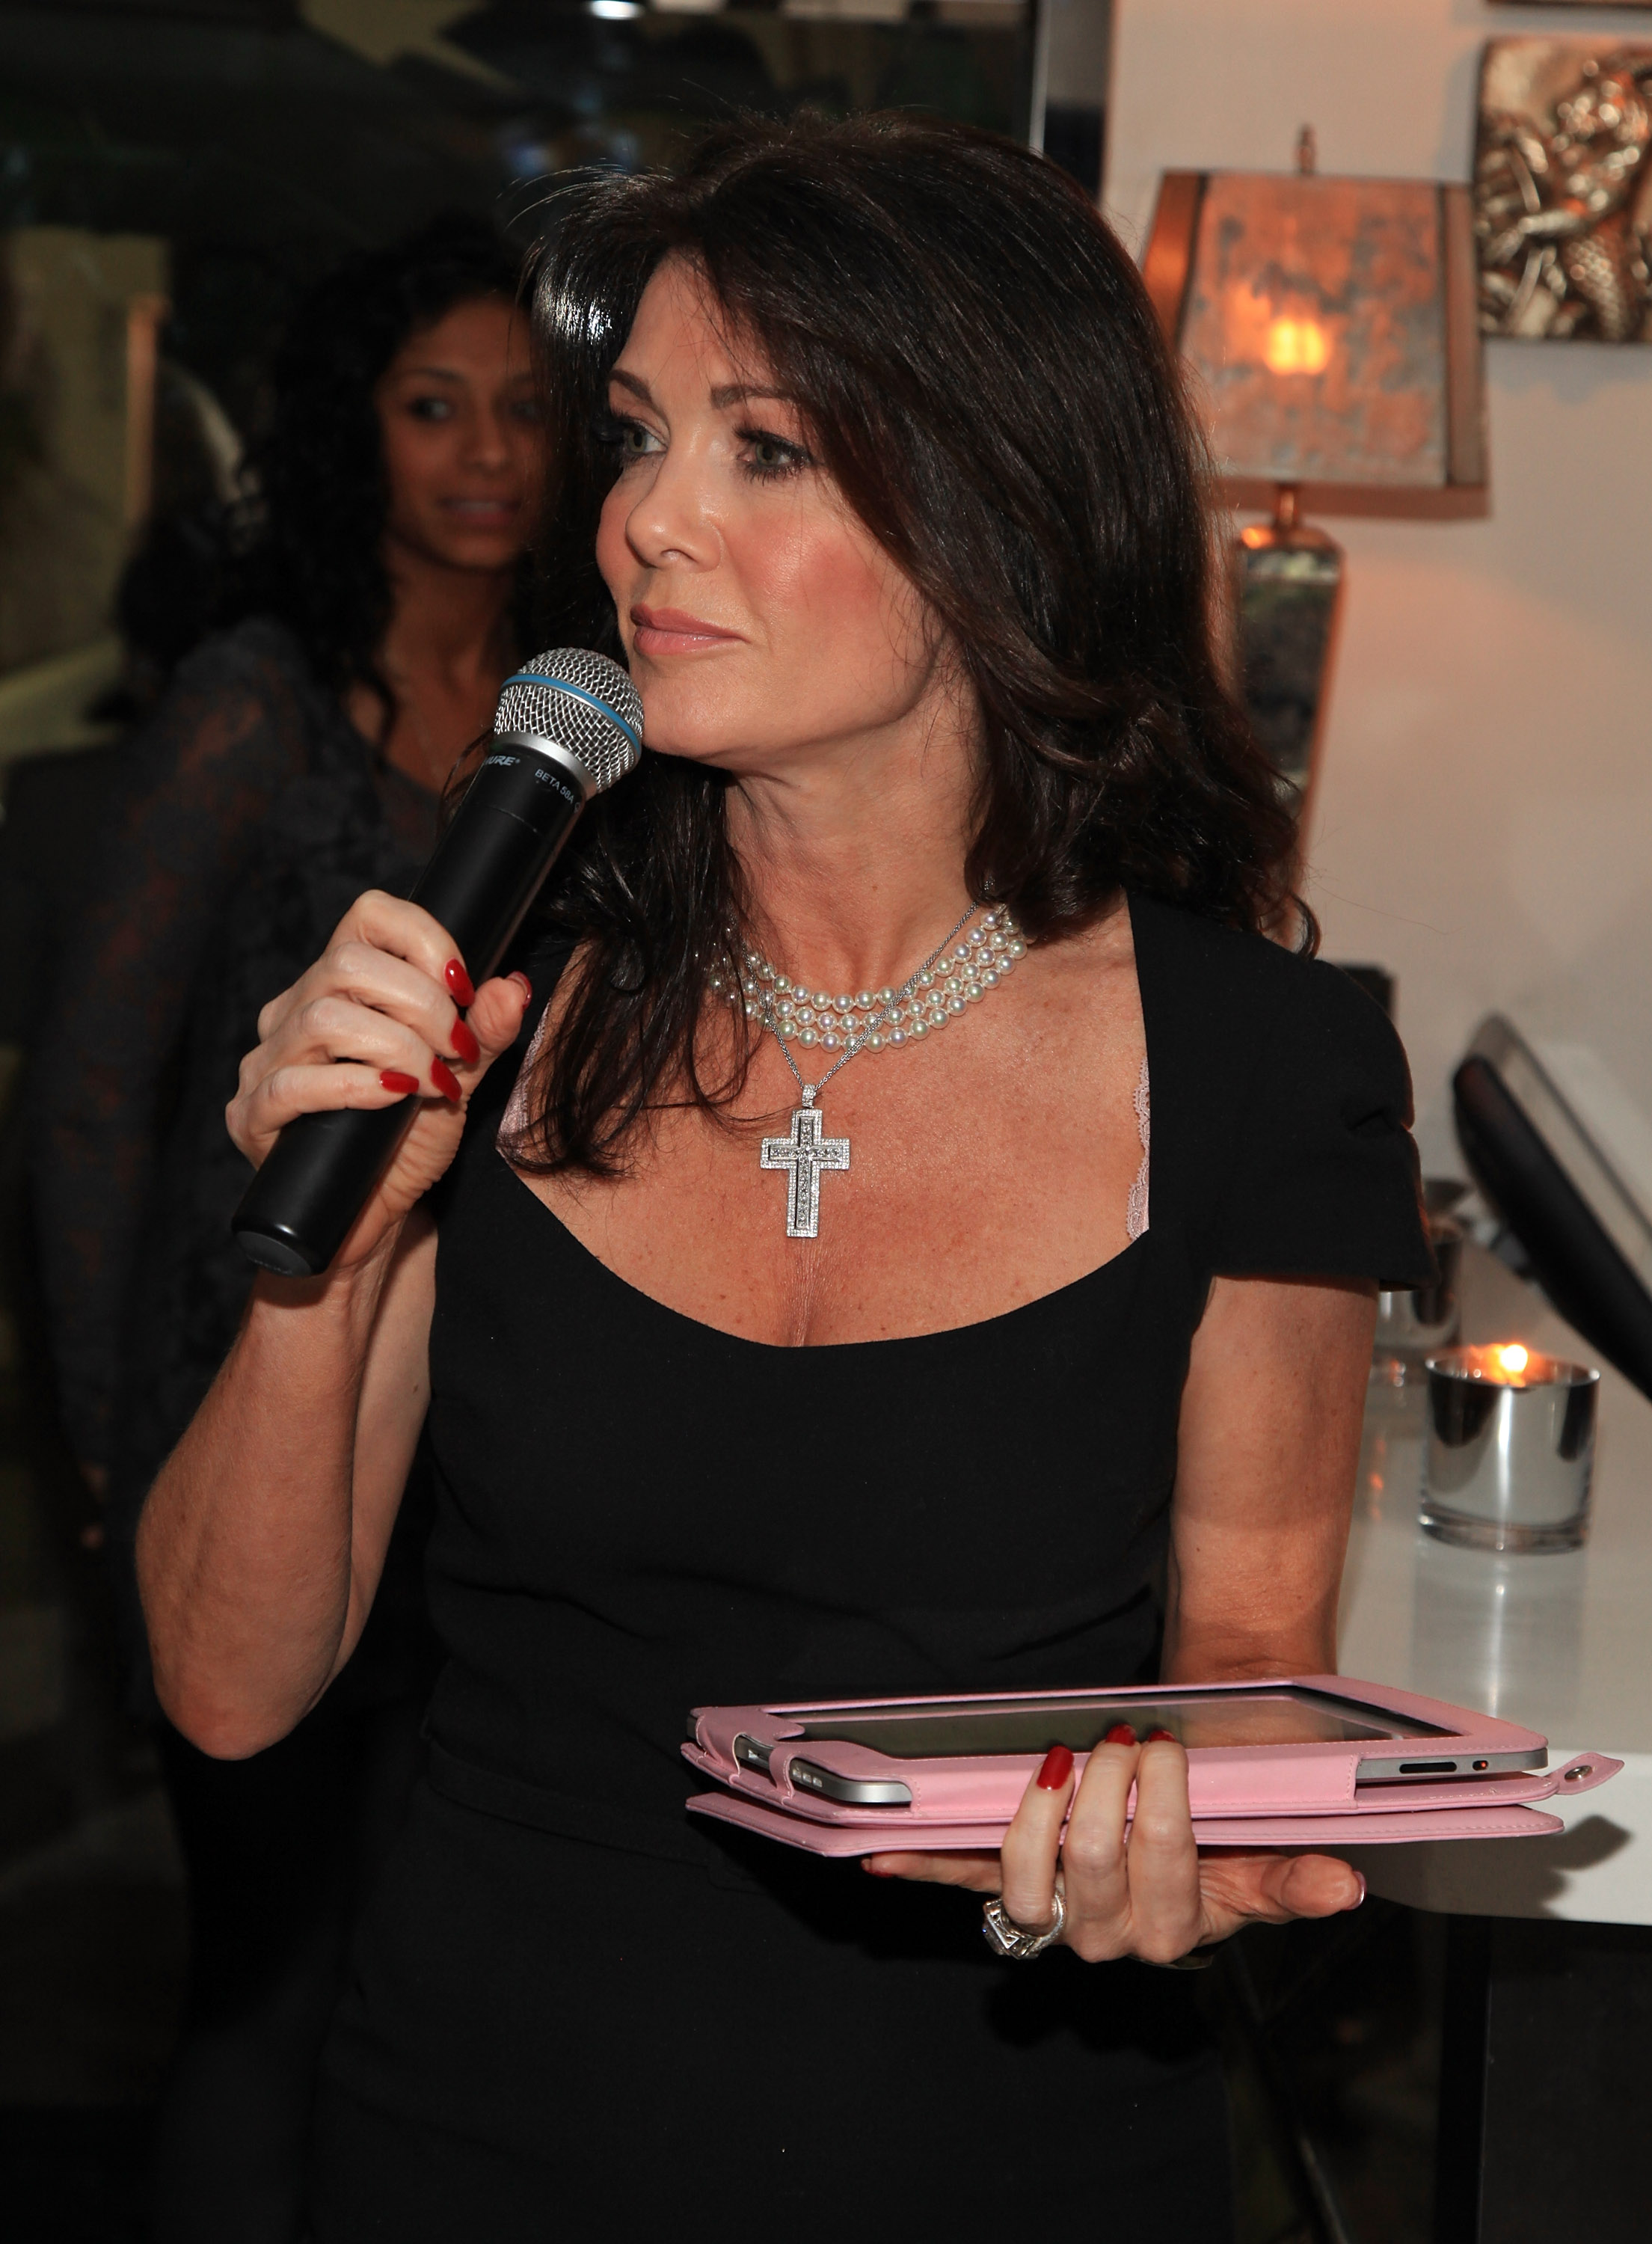 Top 20 Most Hilarious Lisa Vanderpump Quotes of All-Time